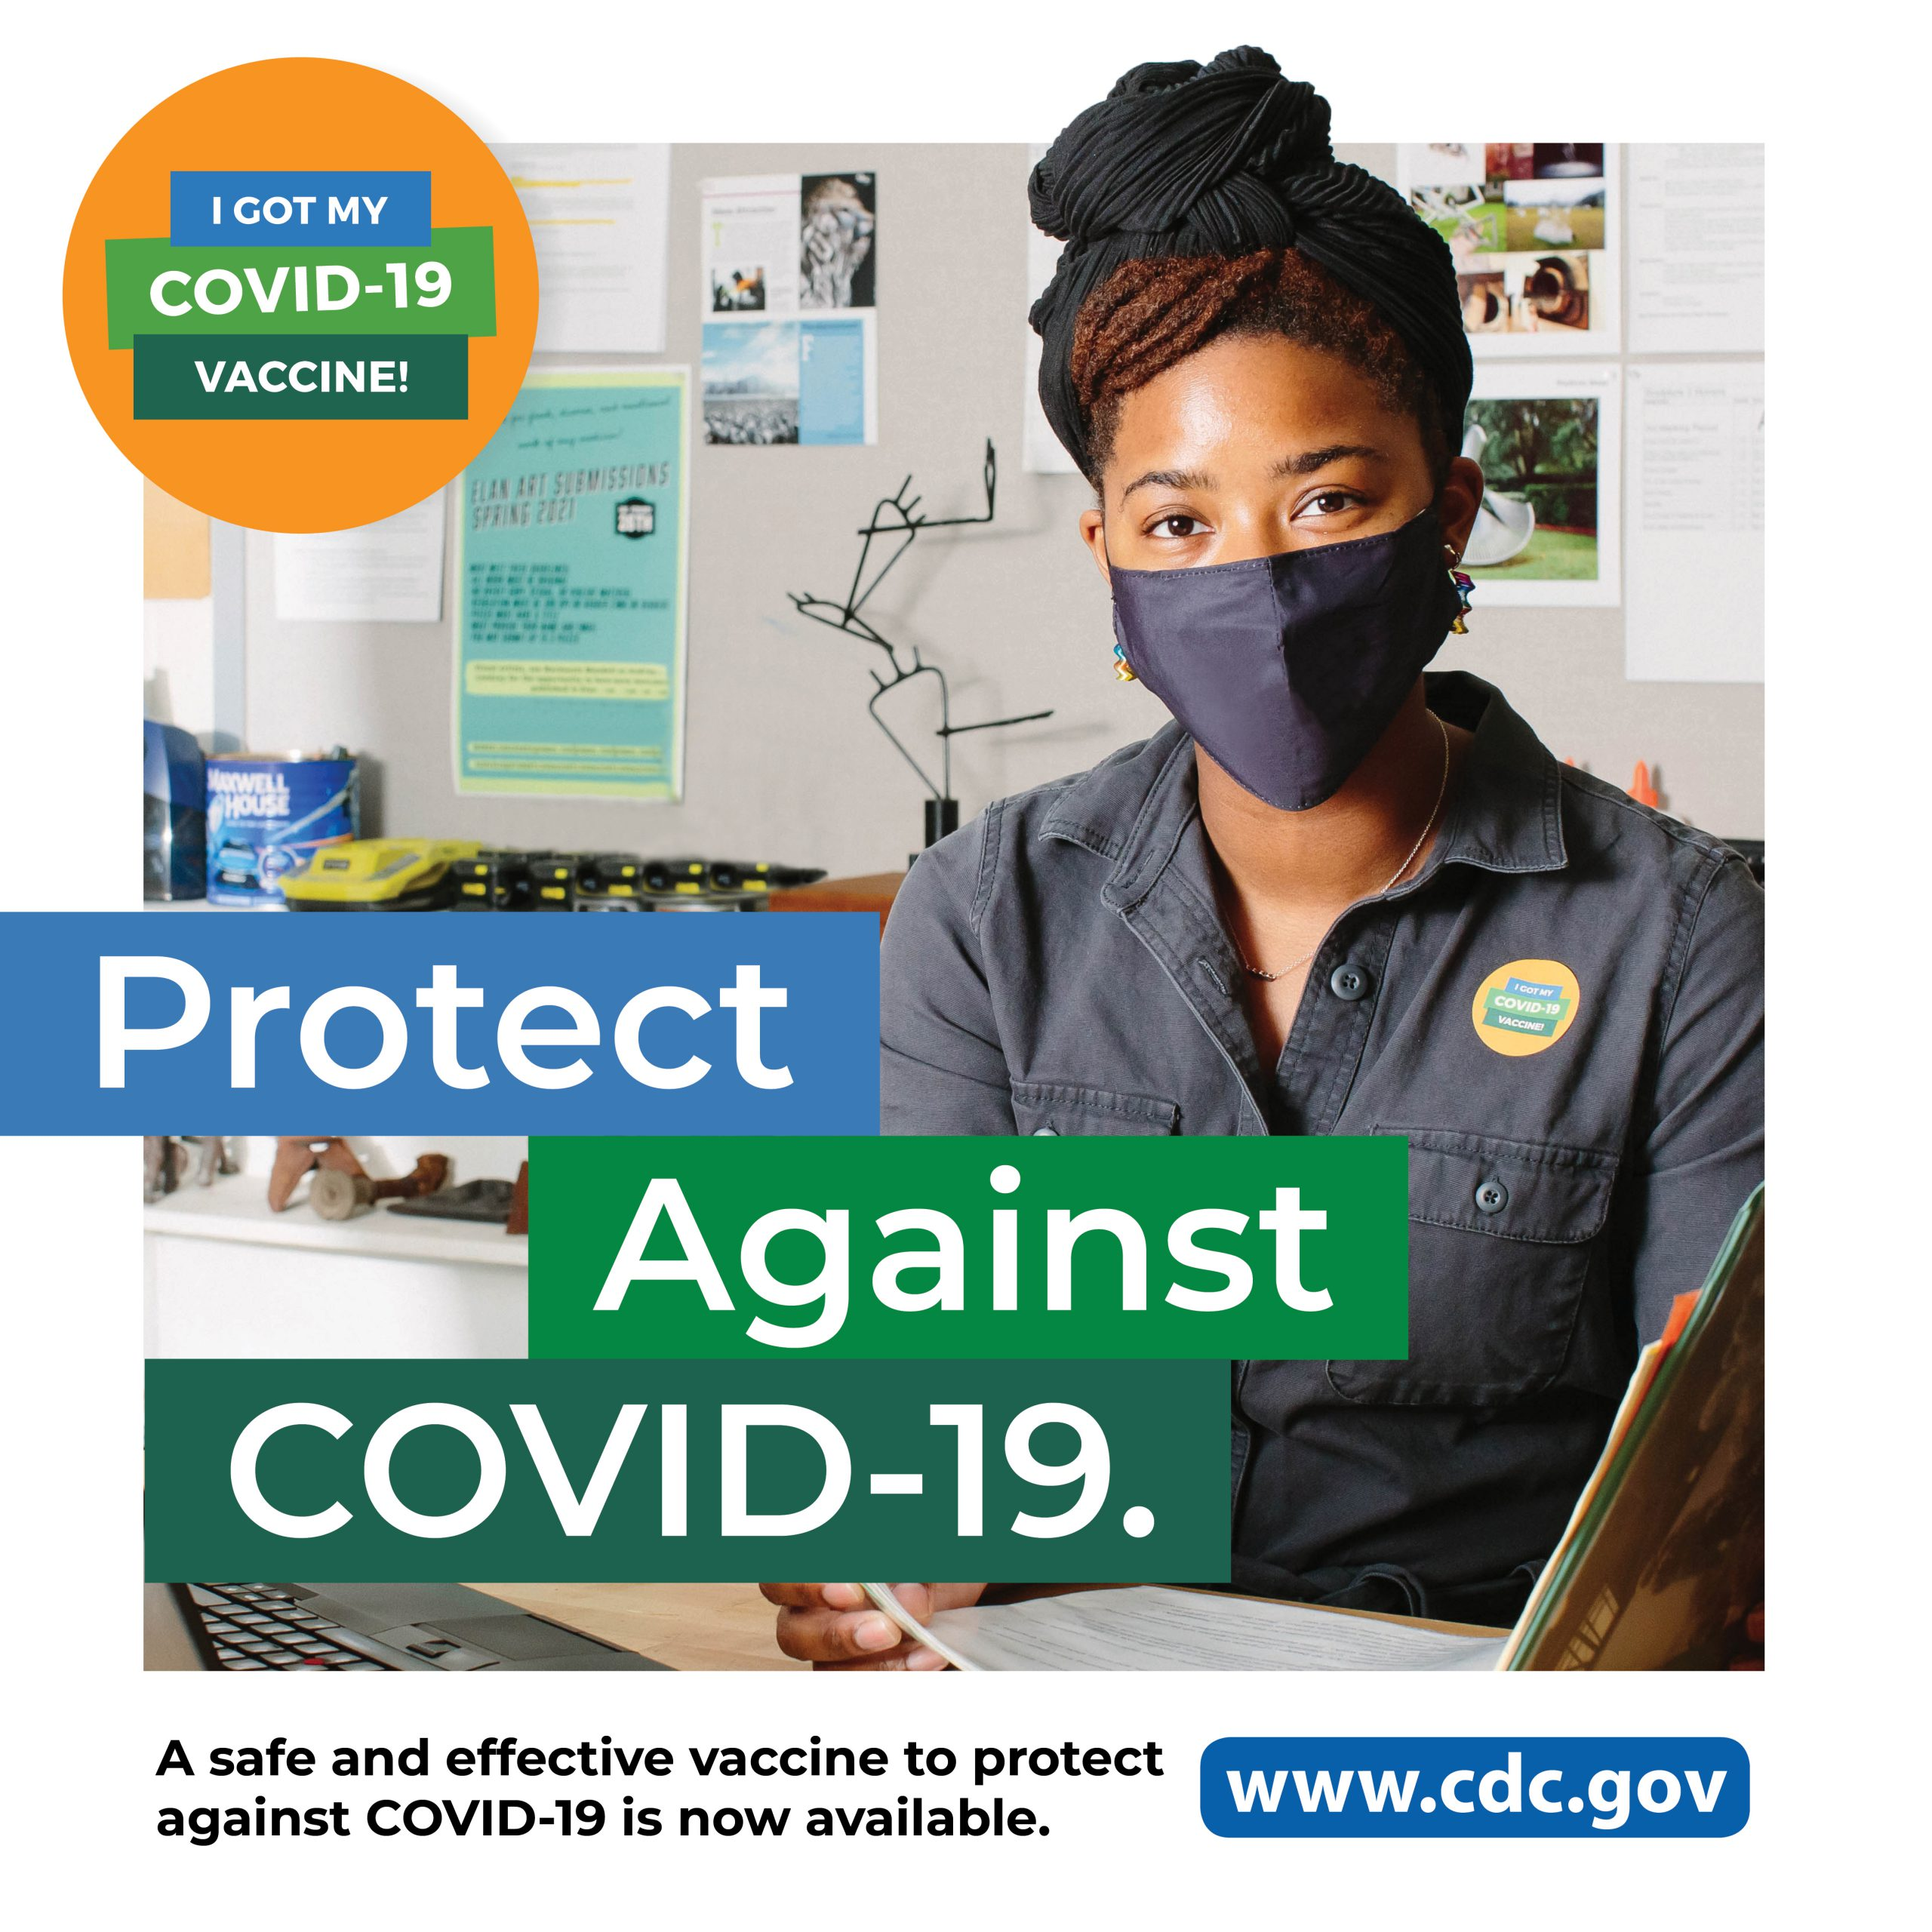 I got my COVID-19 Vaccine: Protect against COVID-19.